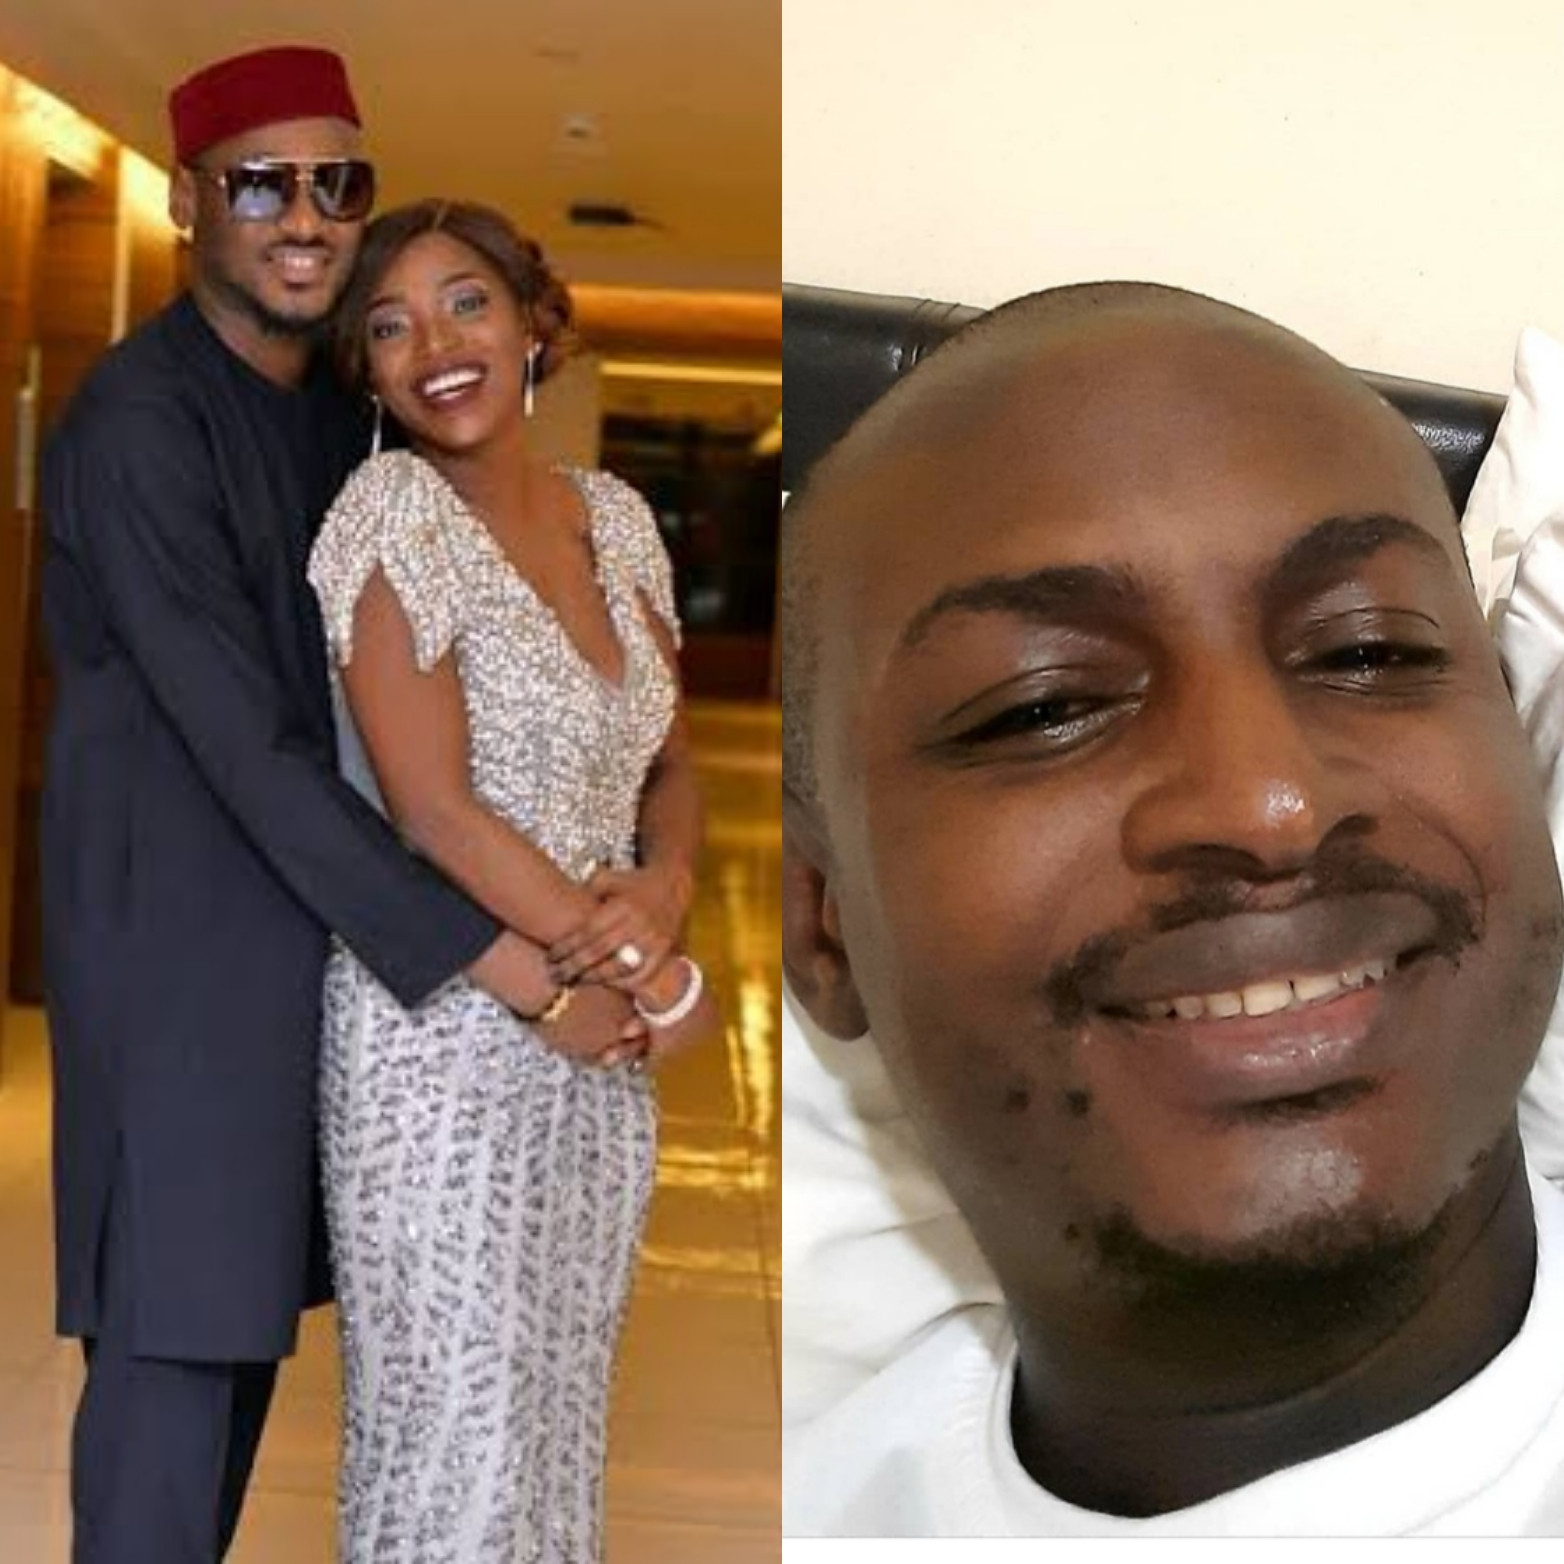 """613175cbb4378 - """"Living under my roof and coming here to insult me"""" Annie Idibia hits back at Tuface's brother, Charles Idibia"""